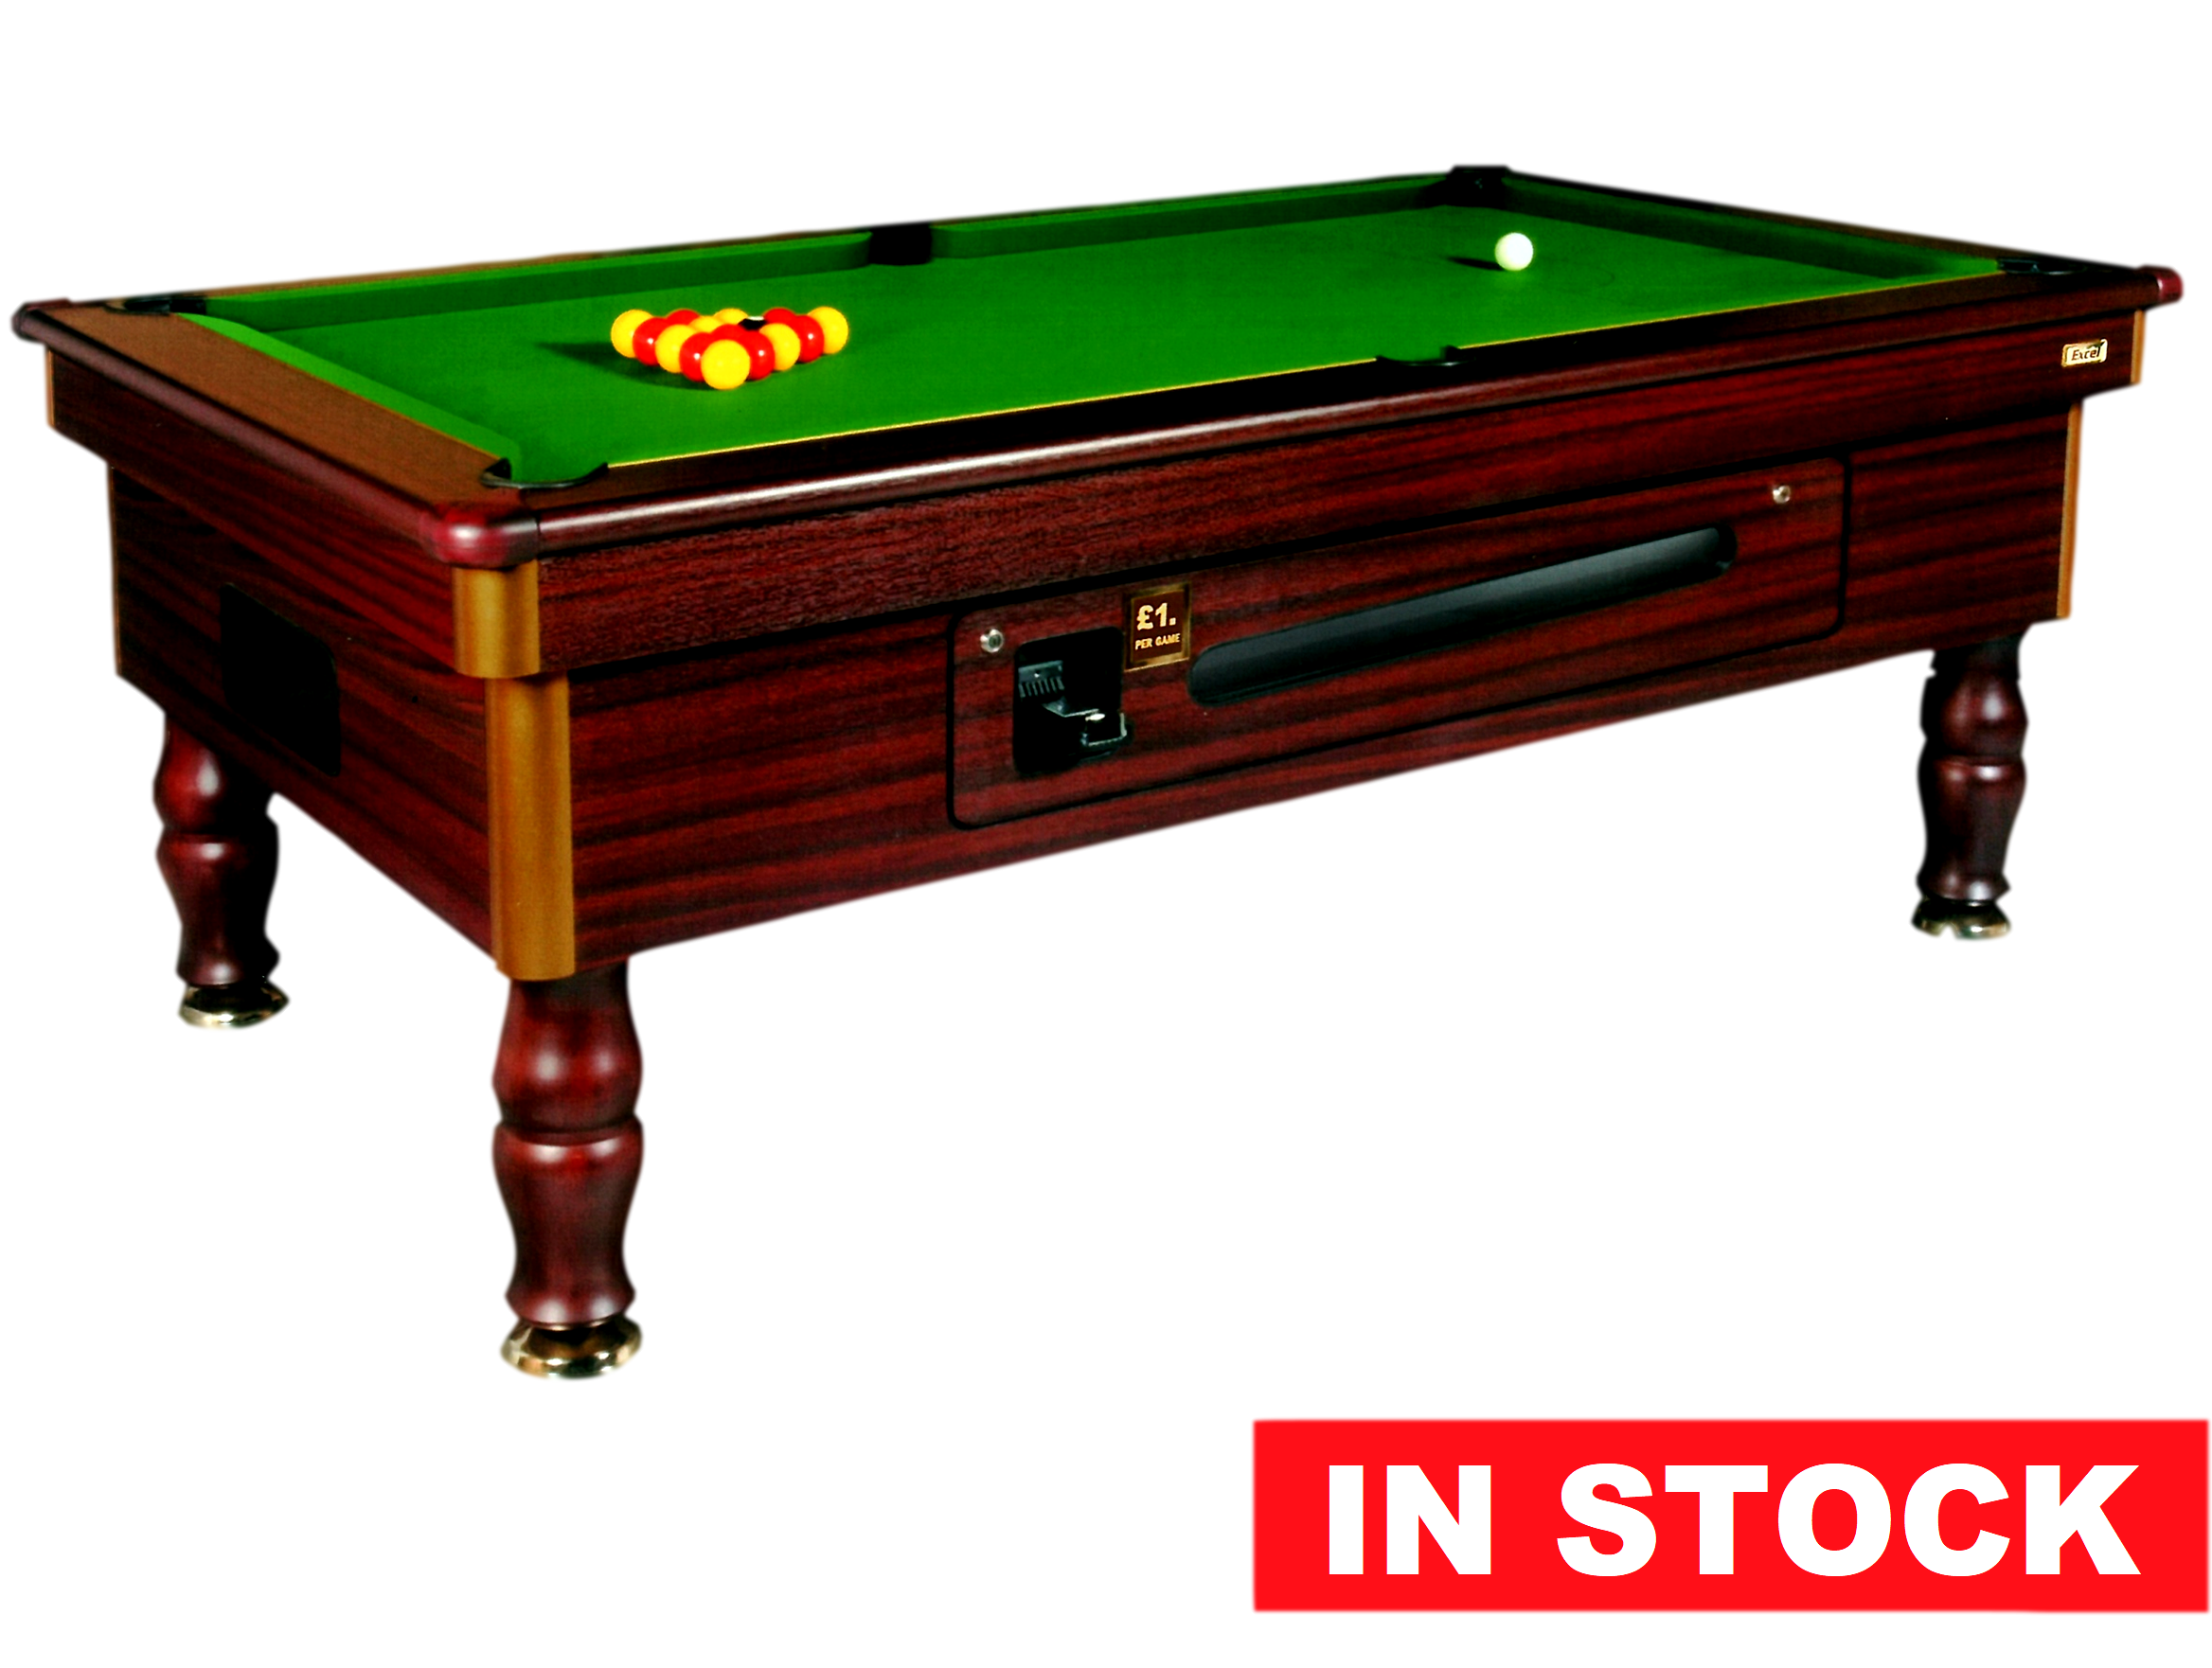 Ft Regent Mahogany Pool Table In Stock - Regent pool table